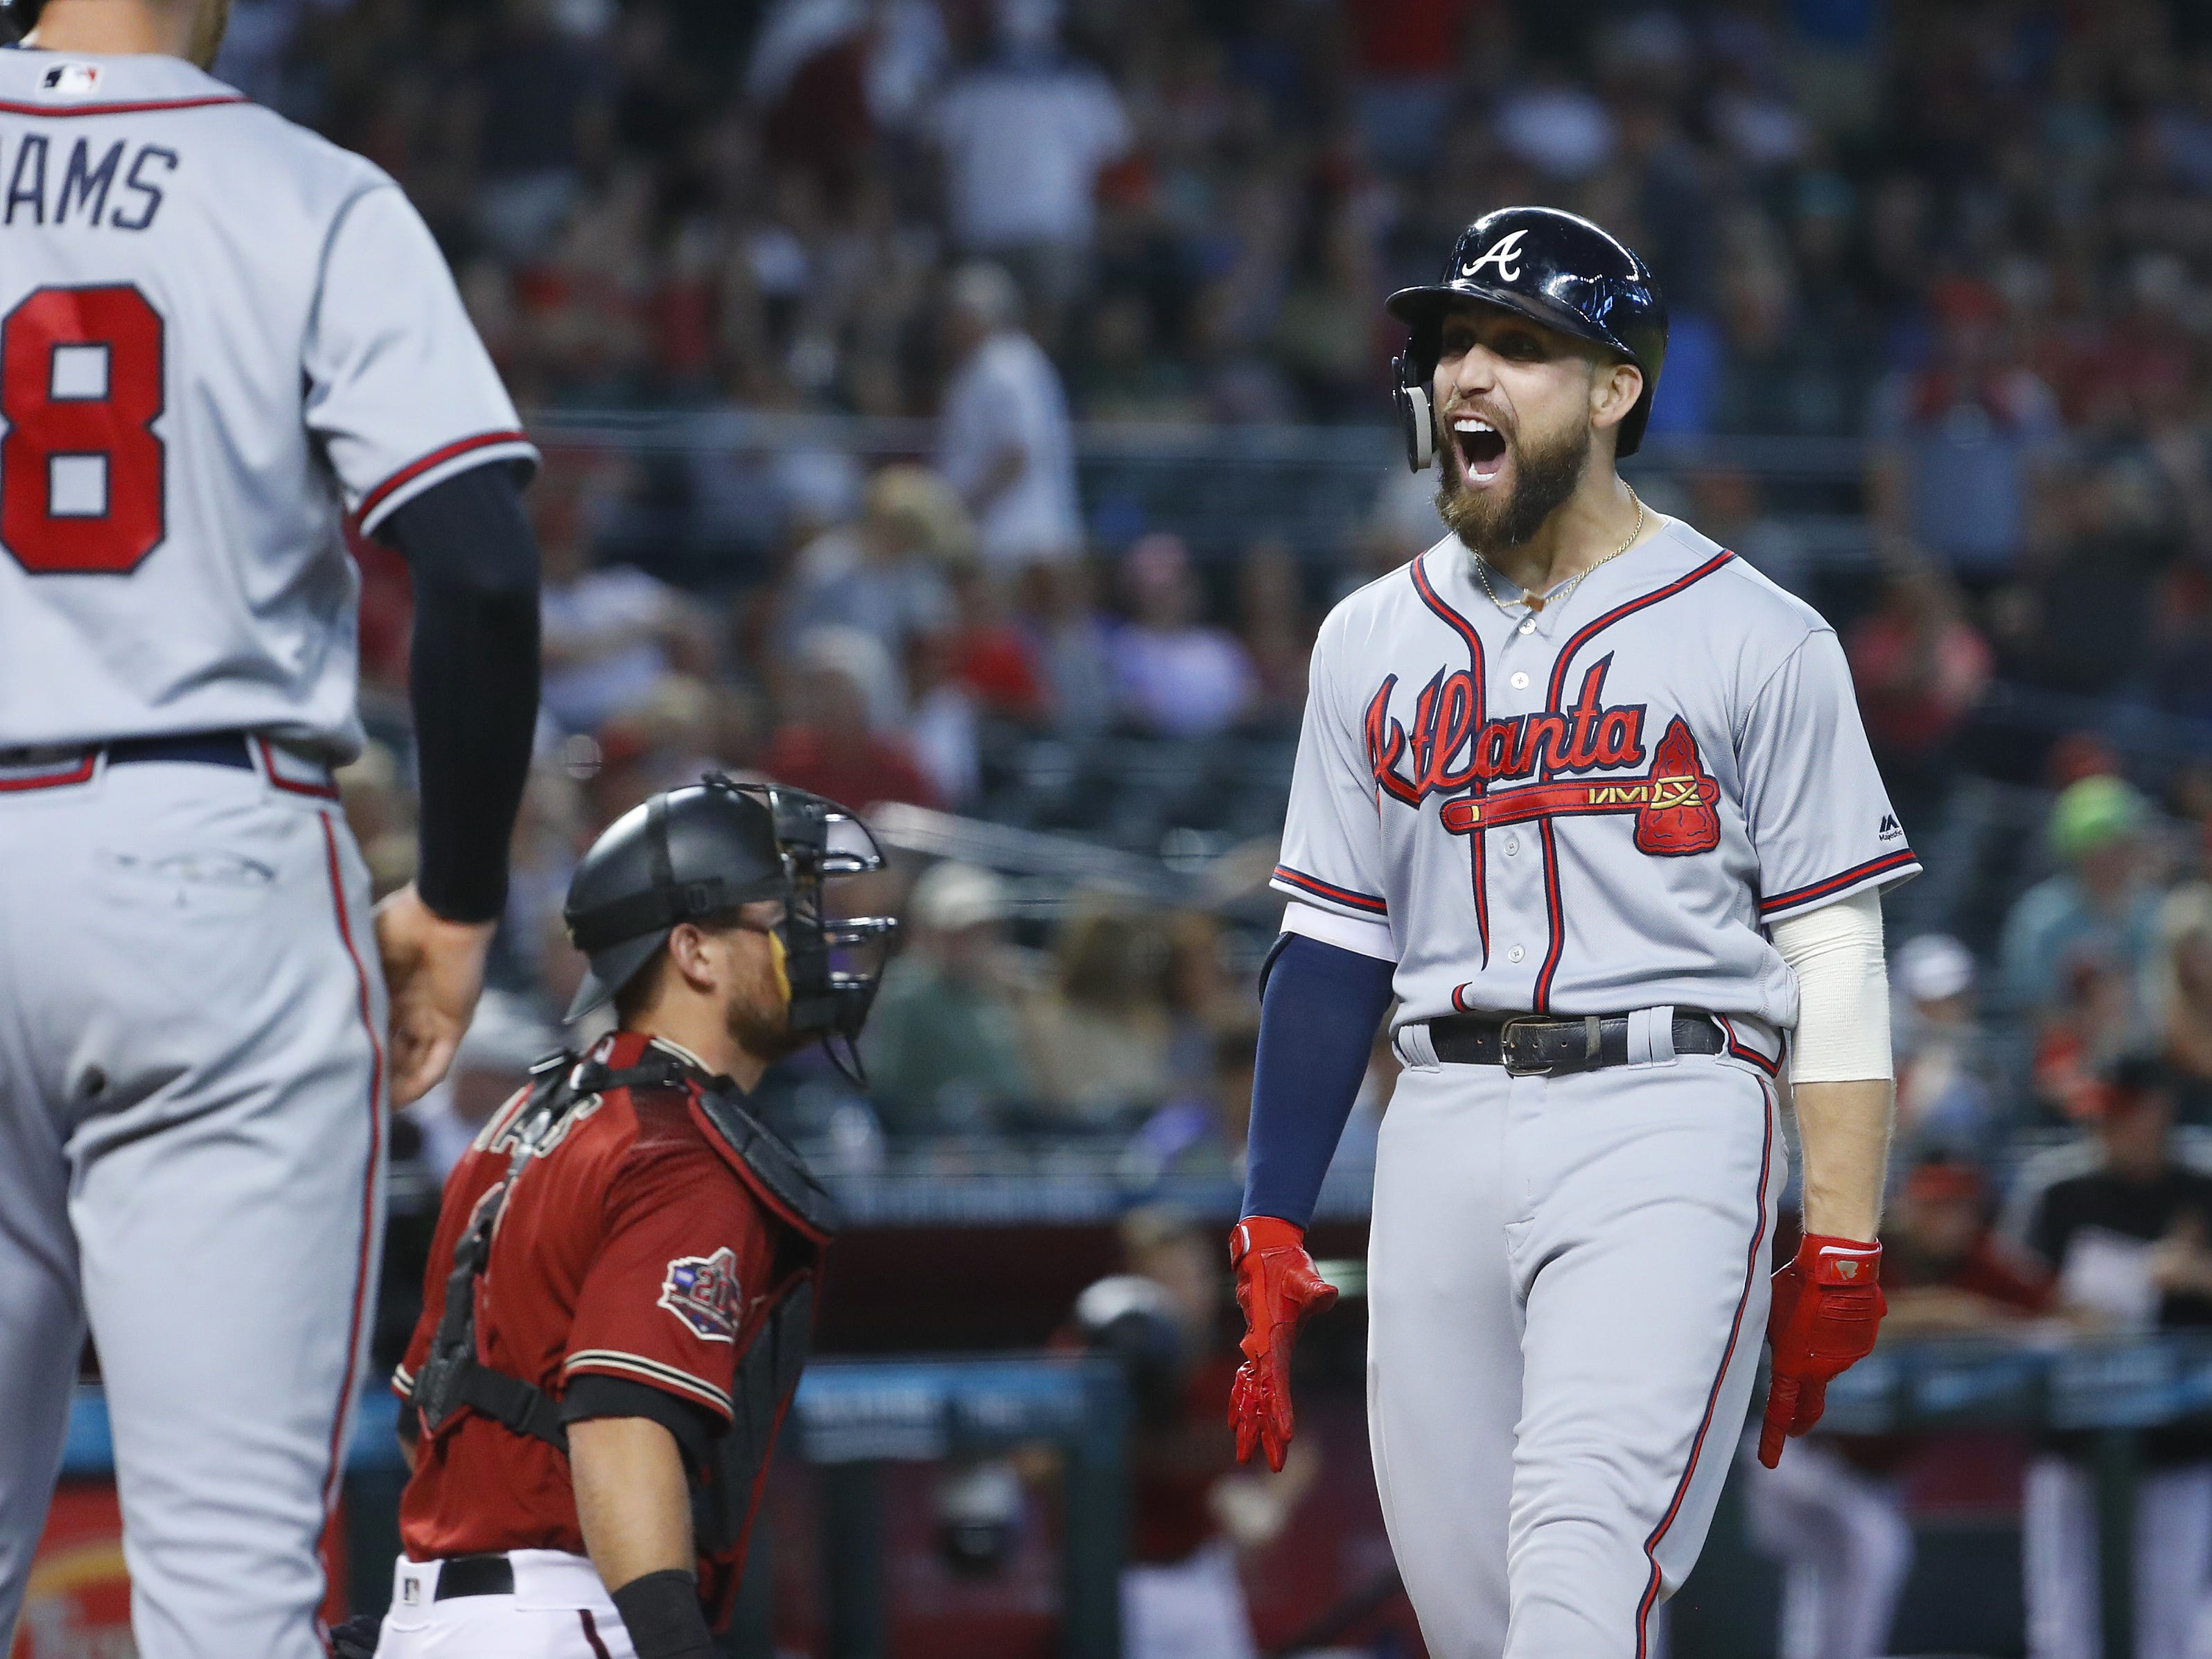 Braves Ender Inciarte (11) celebrates on his way home after hitting a three-run home run during the ninth inning at Chase Field in Phoenix, Ariz. on Sept. 9, 2018.